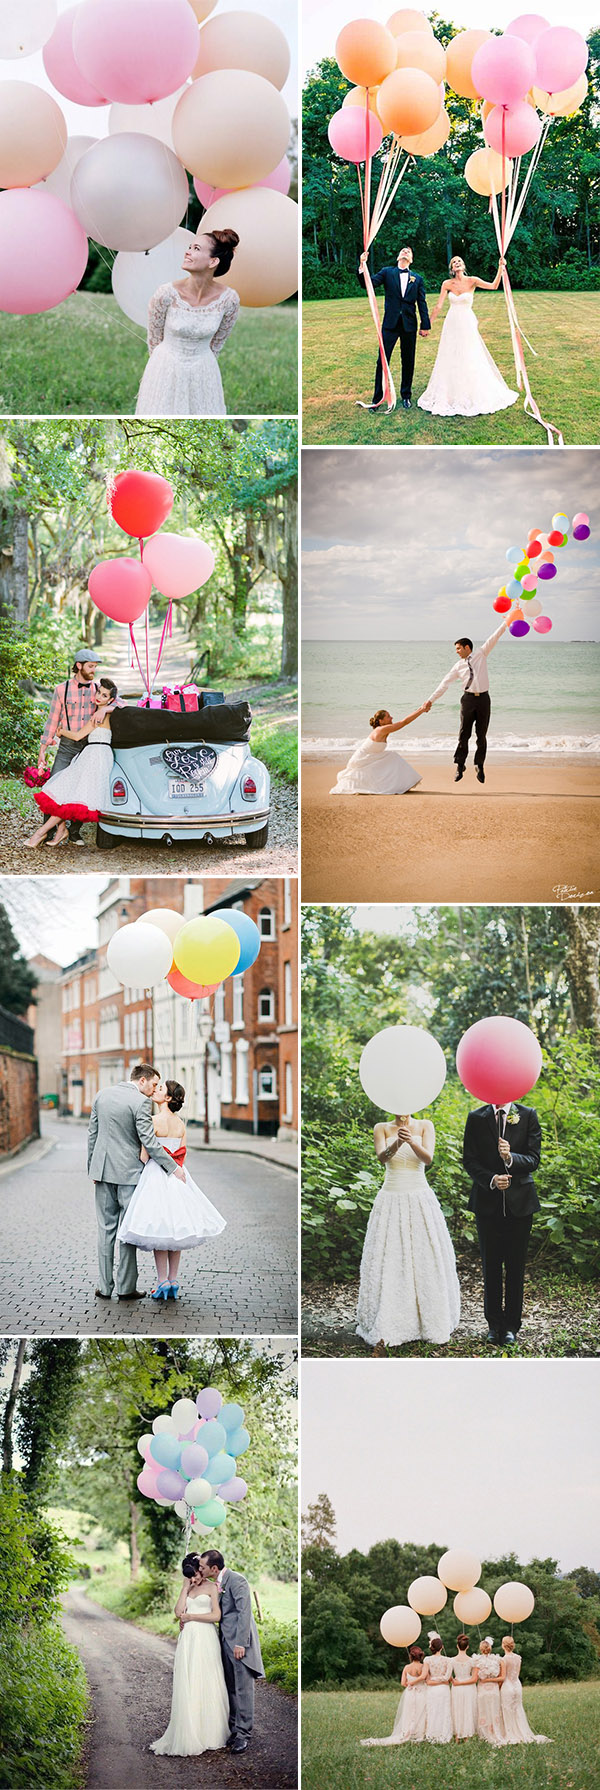 lovely wedding photo ideas with colorful balloons